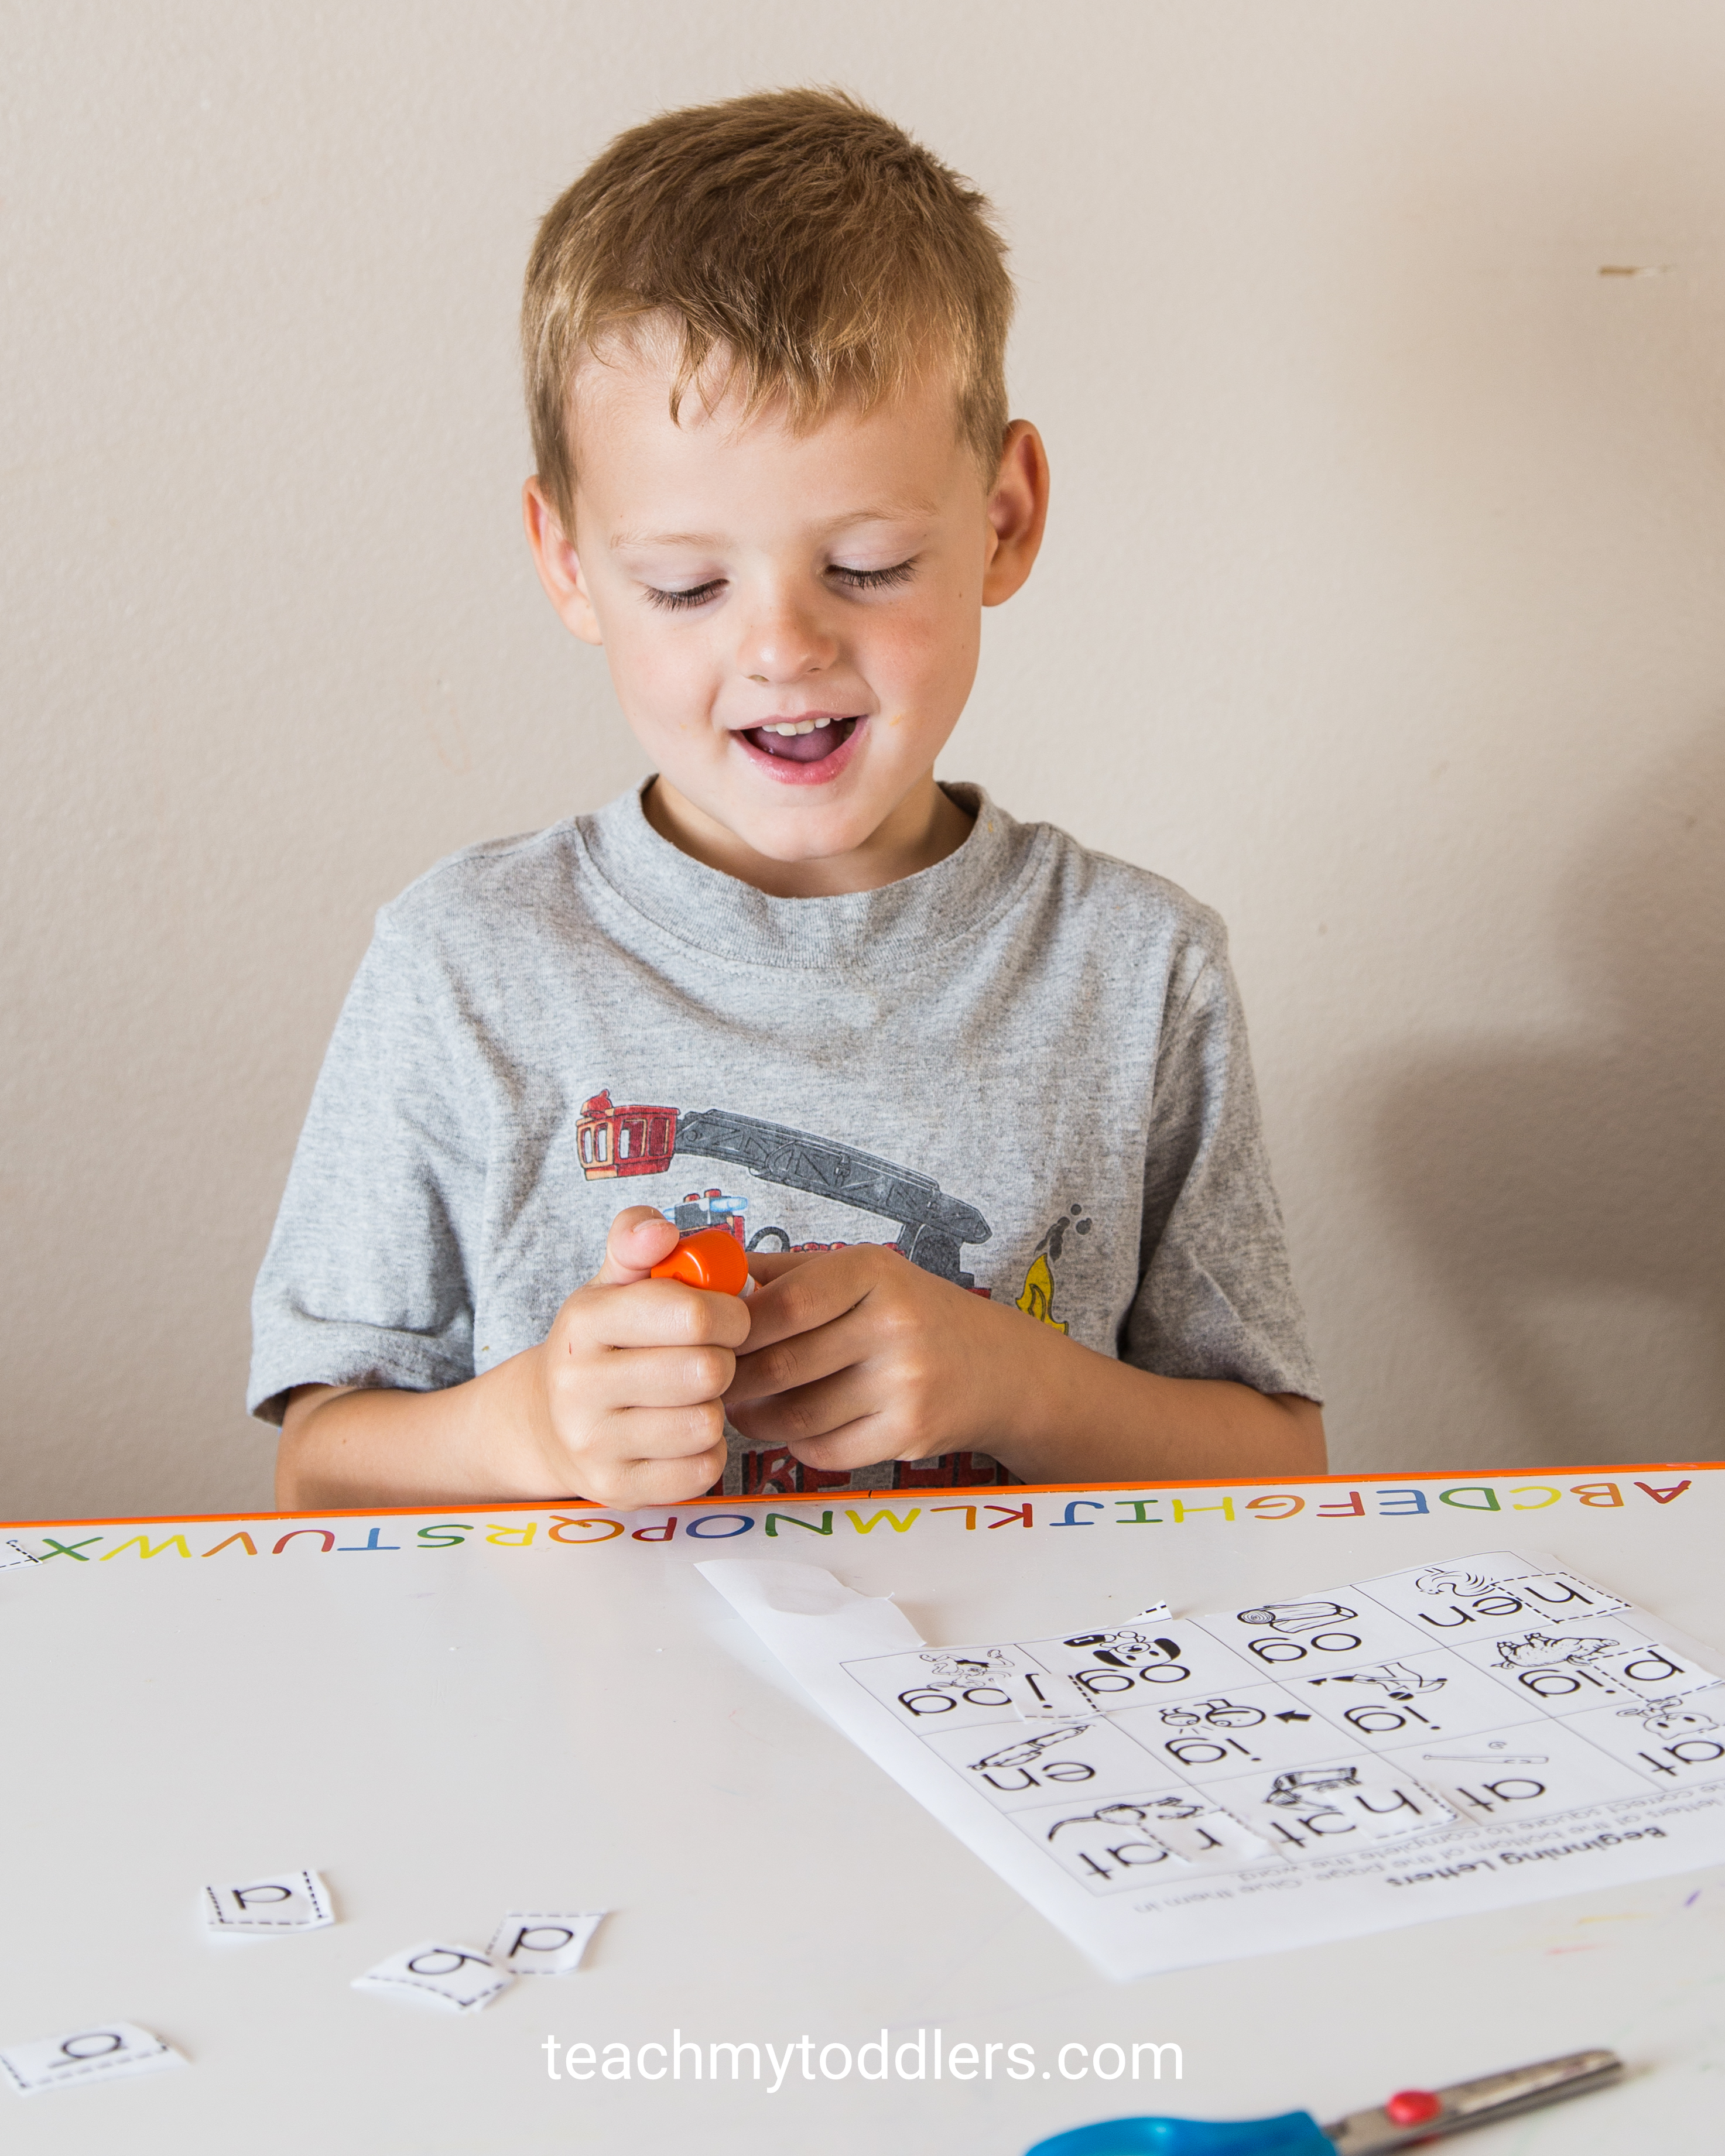 Find out how to use this cut and paste activity to teach your preschoolers about letters